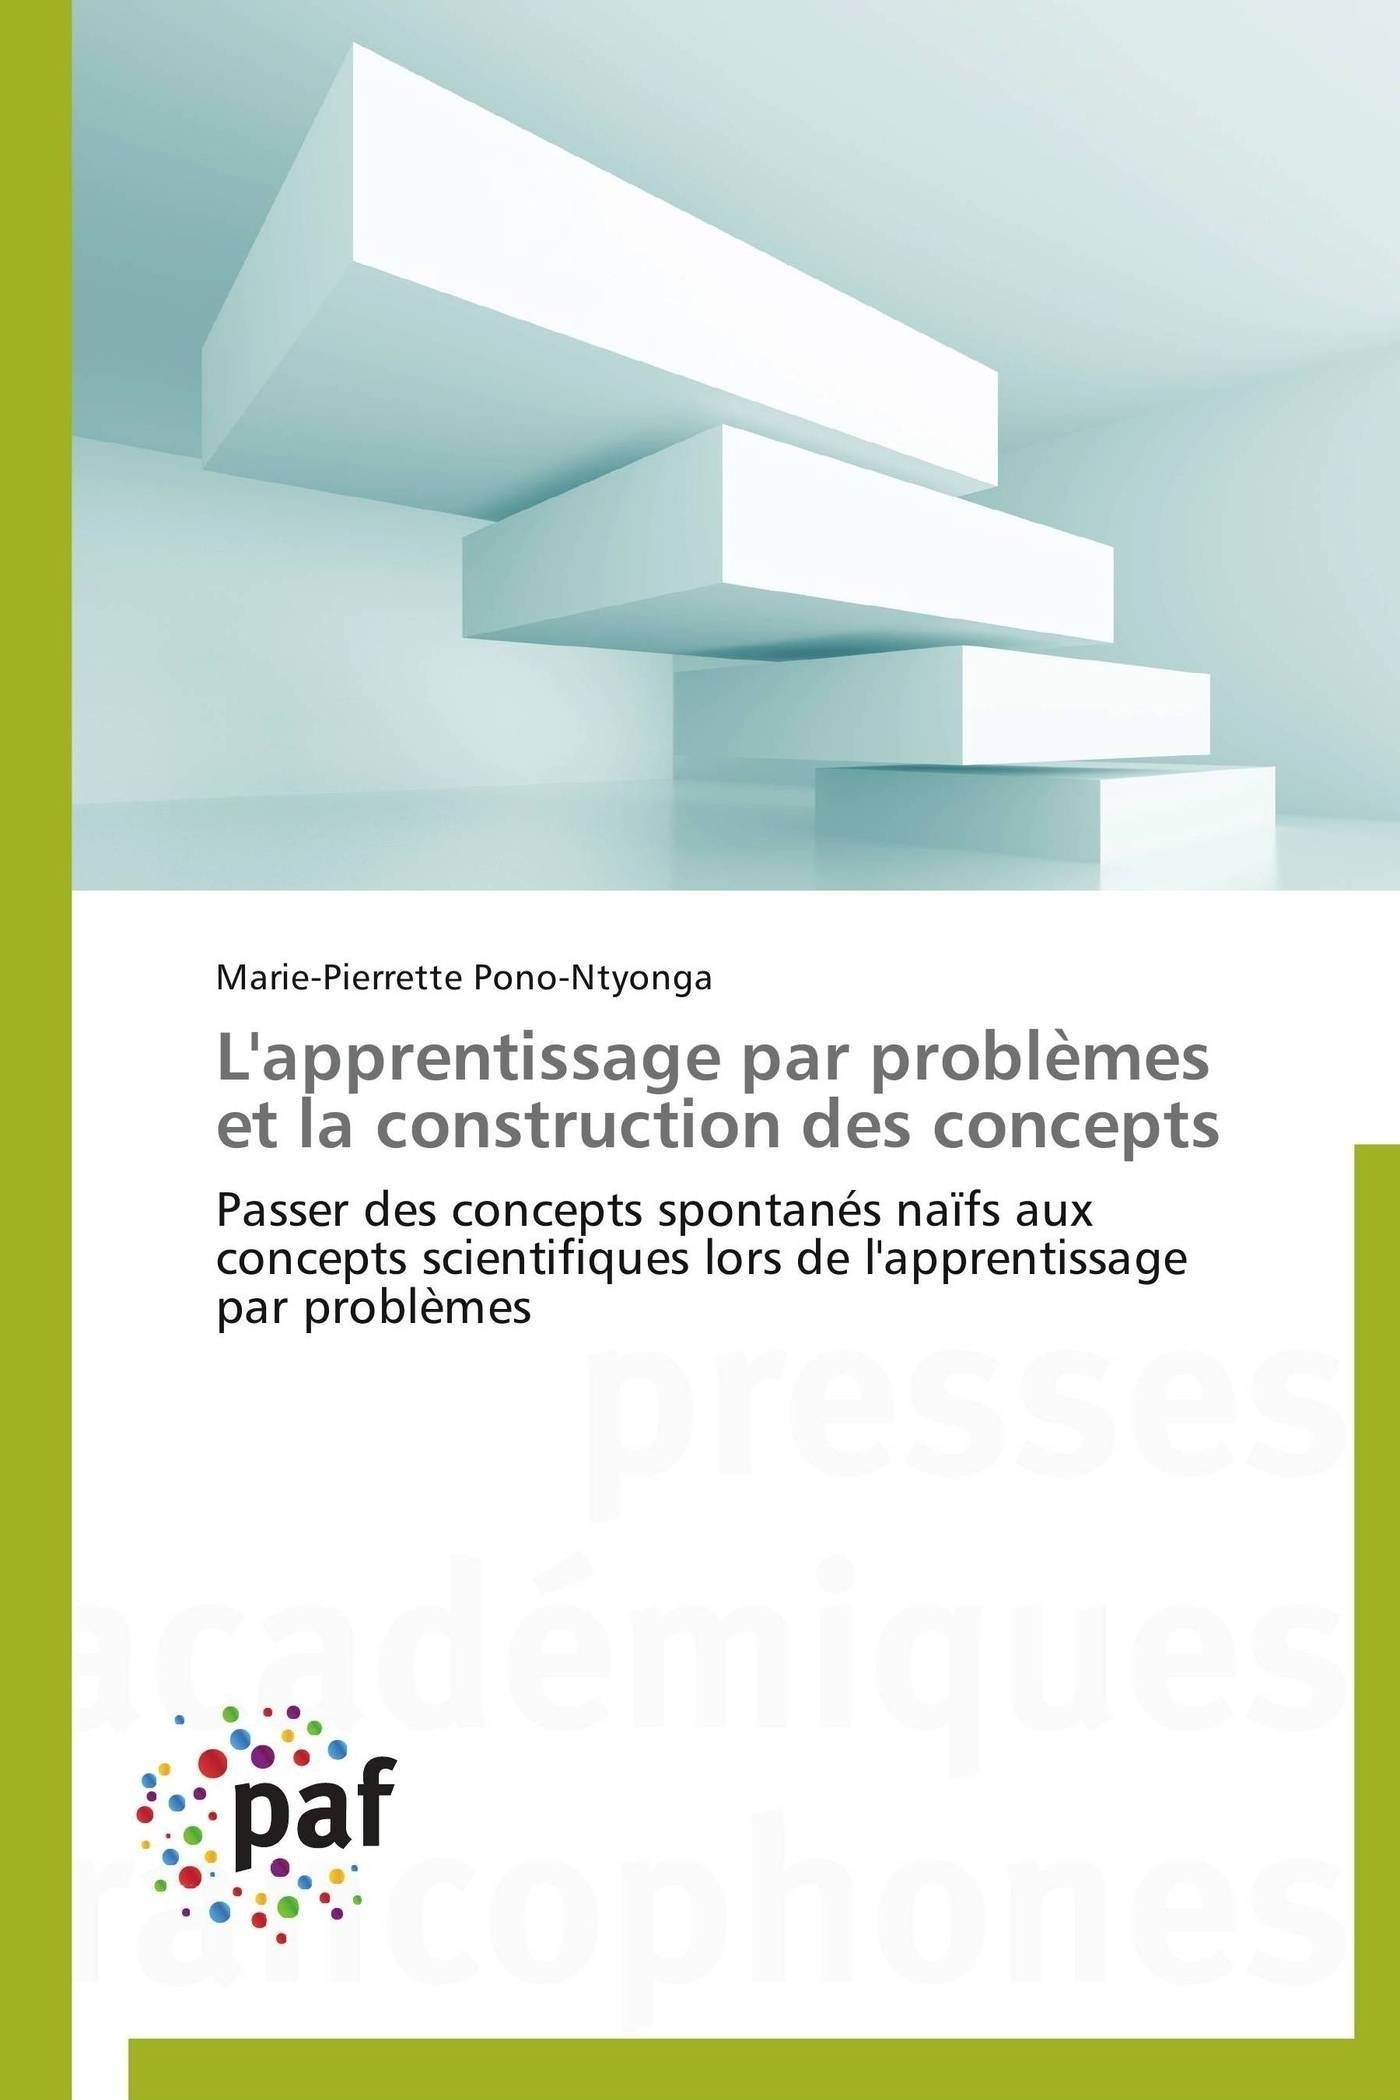 L'APPRENTISSAGE PAR PROBLEMES ET LA CONSTRUCTION DES CONCEPTS